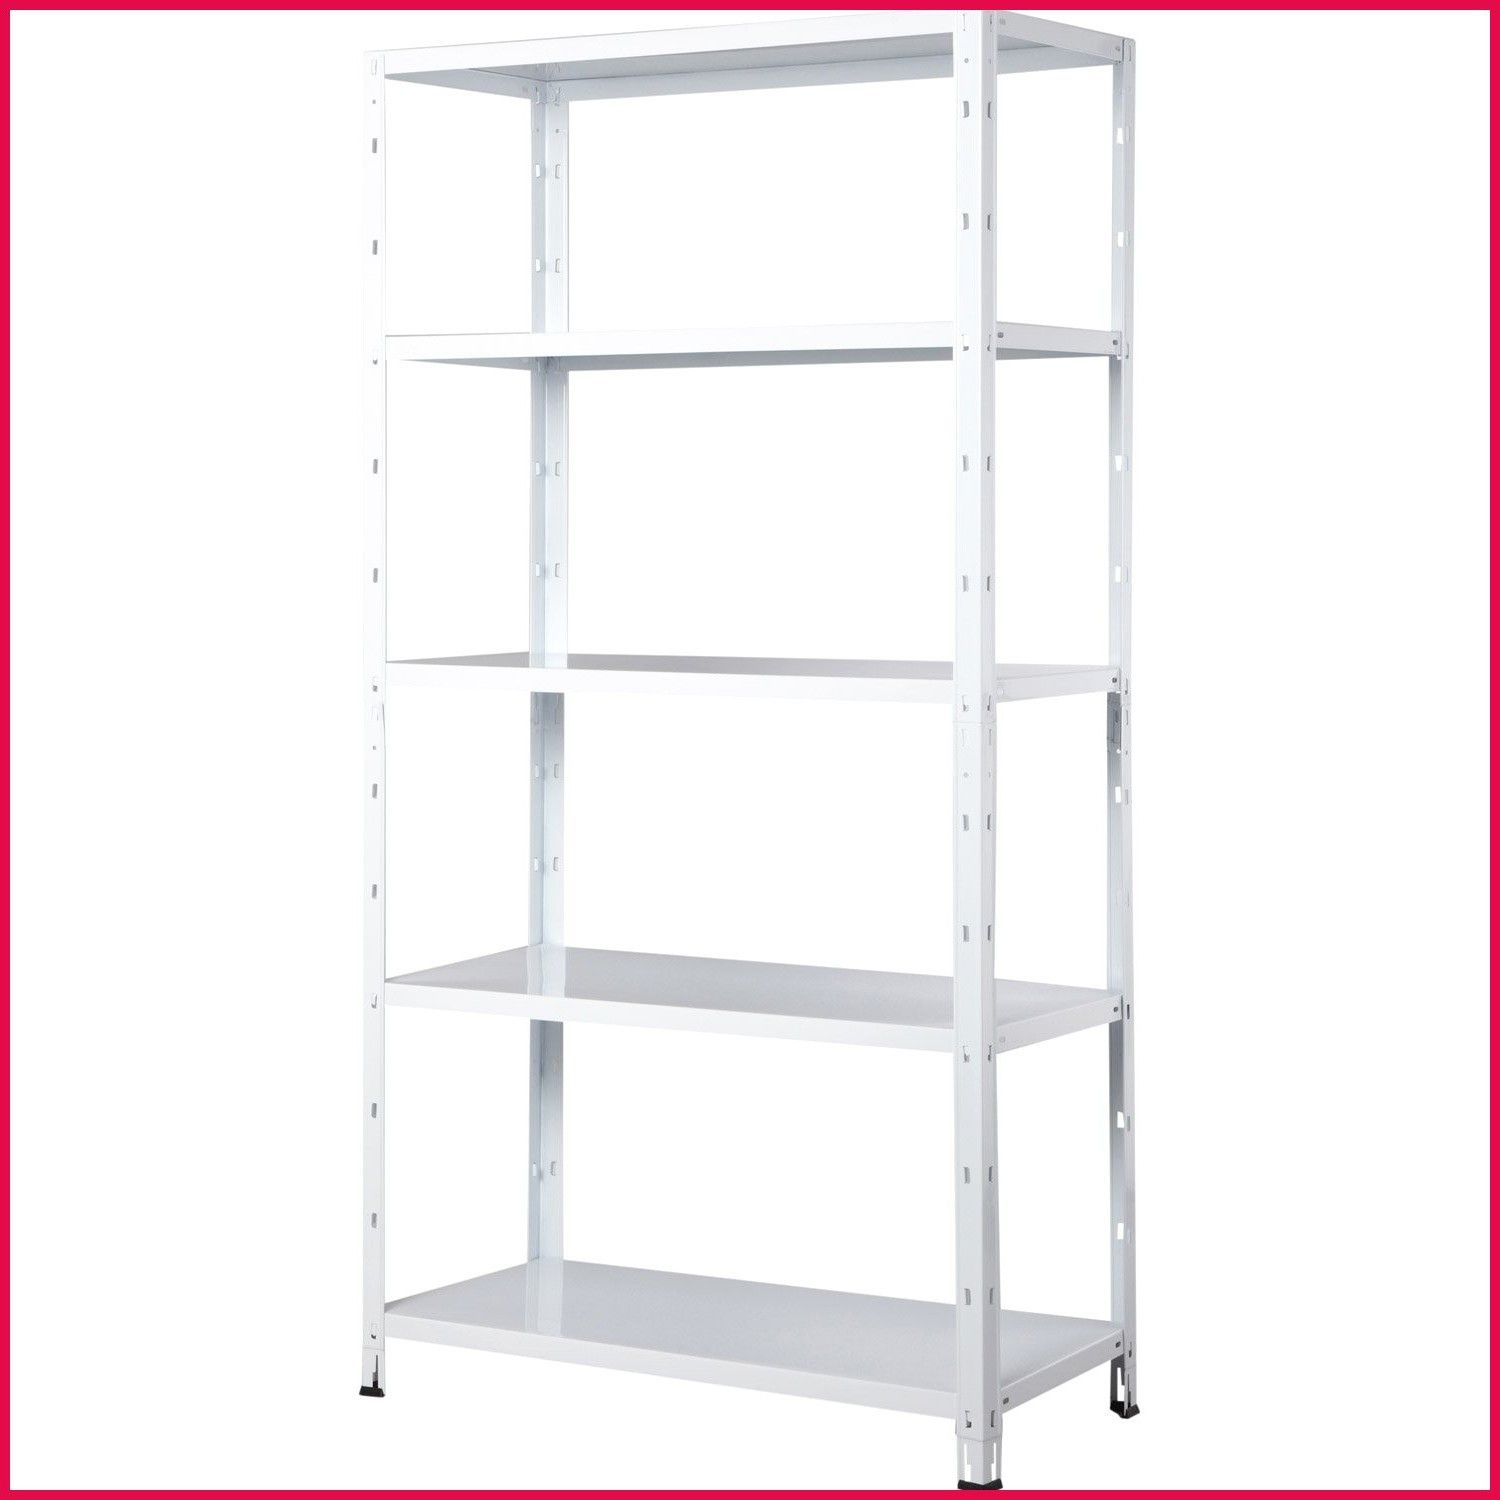 Best Of Armoire Atelier Brico Depot Etagere Metallique Etagere Rangement Idees Etageres